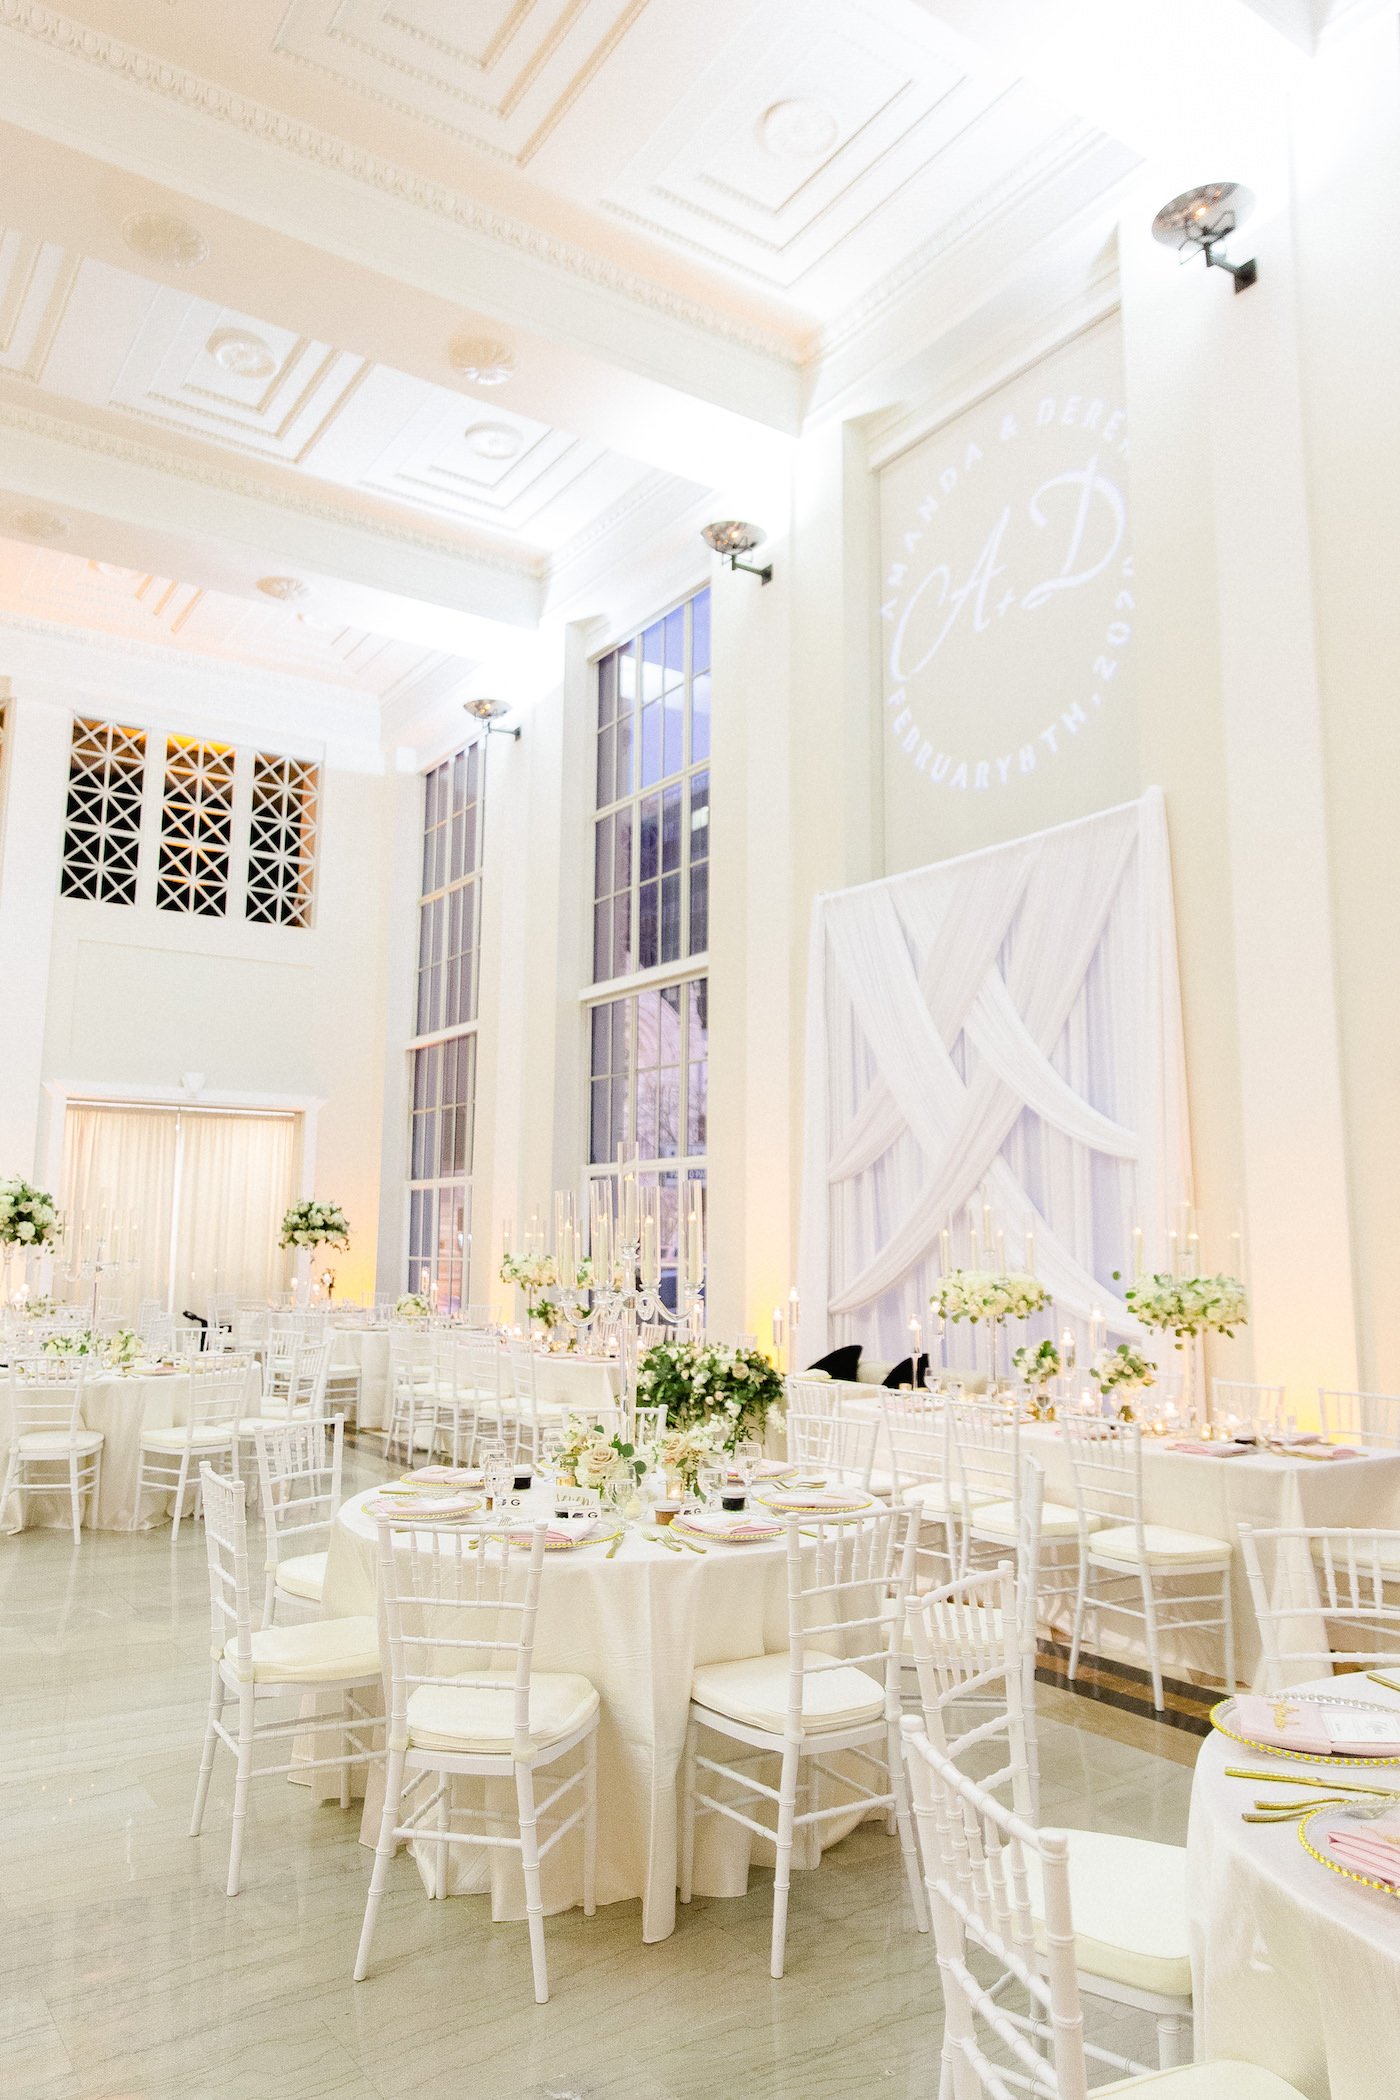 Elegant Classic Wedding Reception and Decor, White Criss Cross Draping and Custom Monogram Gobo Light as Backdrop for Sweetheart Table, Lush Greenery, Ivory Linens, Tall Candelabra Centerpieces with Greenery and Flowers, White Chiavari Chairs | Downtown Tampa Wedding Venue The Vault | Florida Wedding Planner Breezin' Weddings